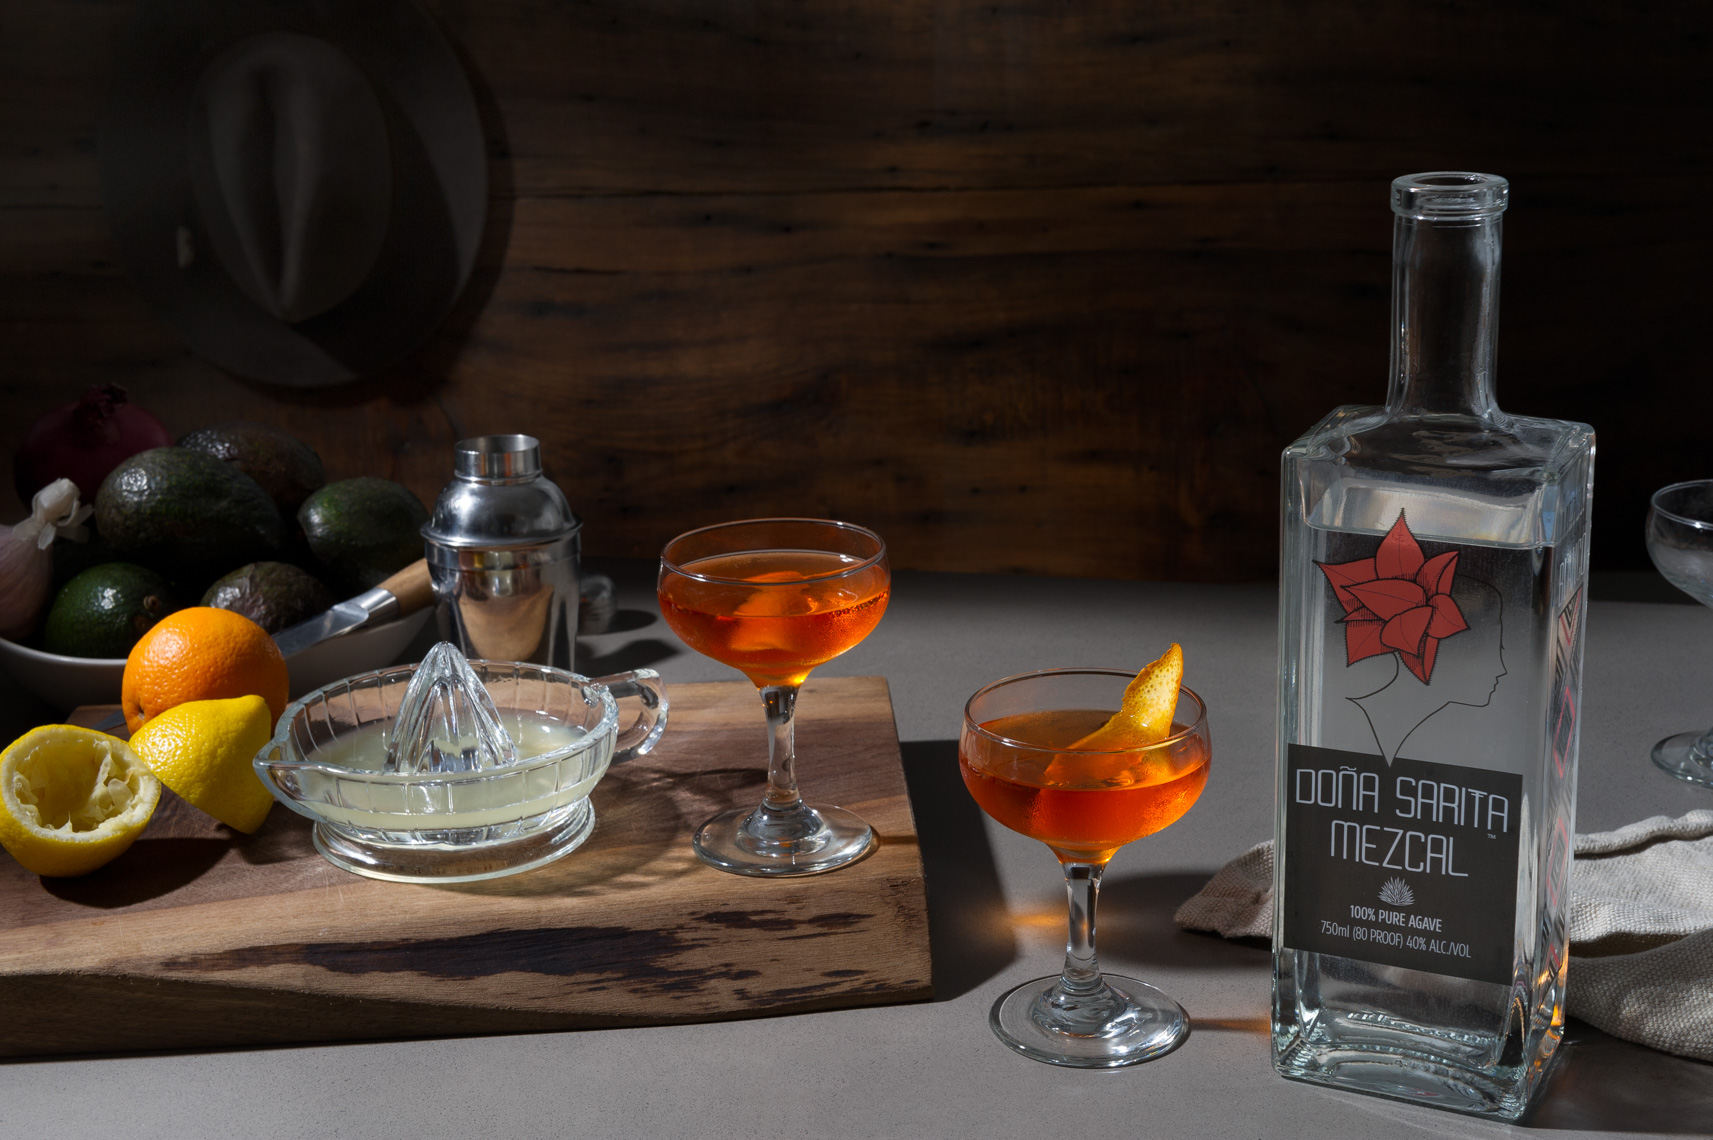 Commercial Liquor Photographer - Mezcal